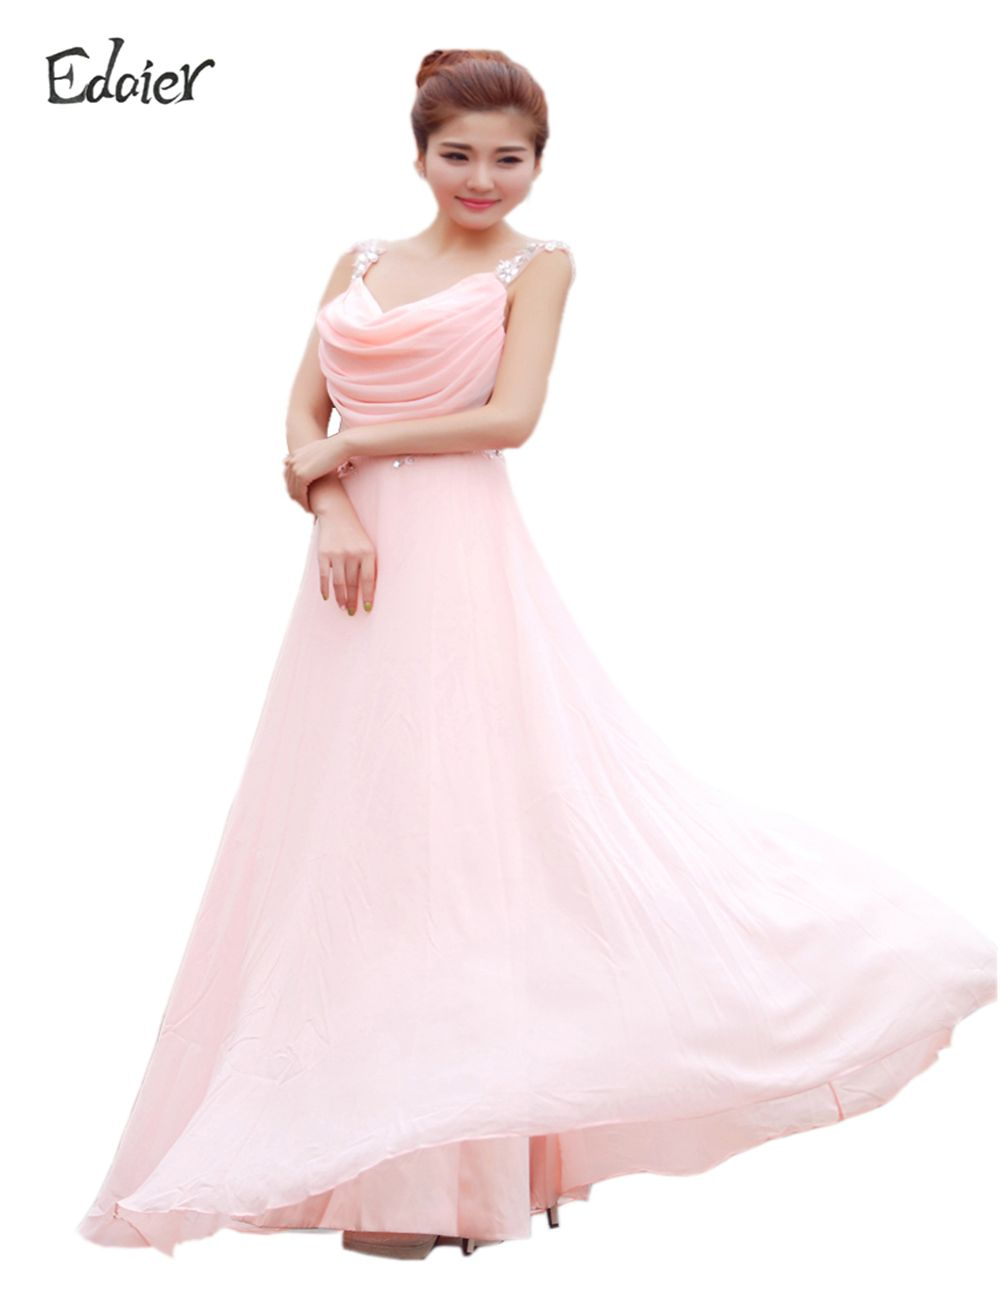 Free Shipping Buy Best Edaier Beautiful Cheap Chiffon Long light